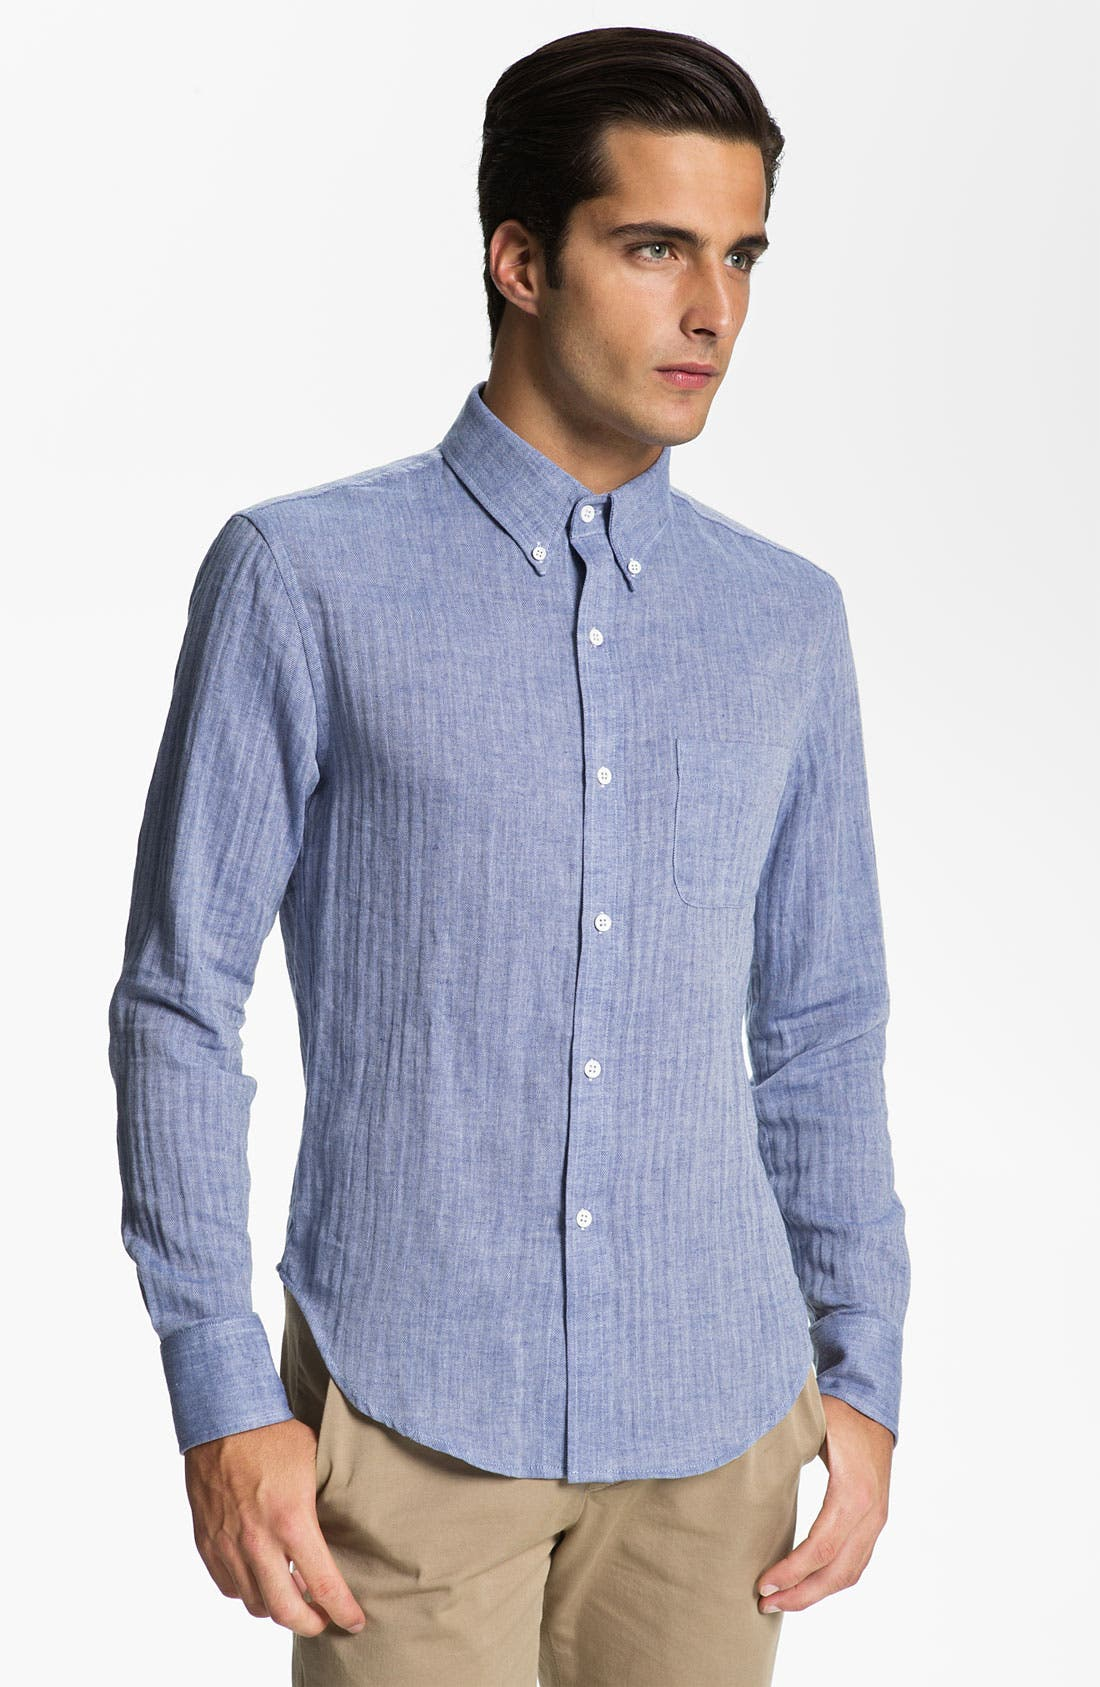 Main Image - Band of Outsiders Herringbone Woven Shirt